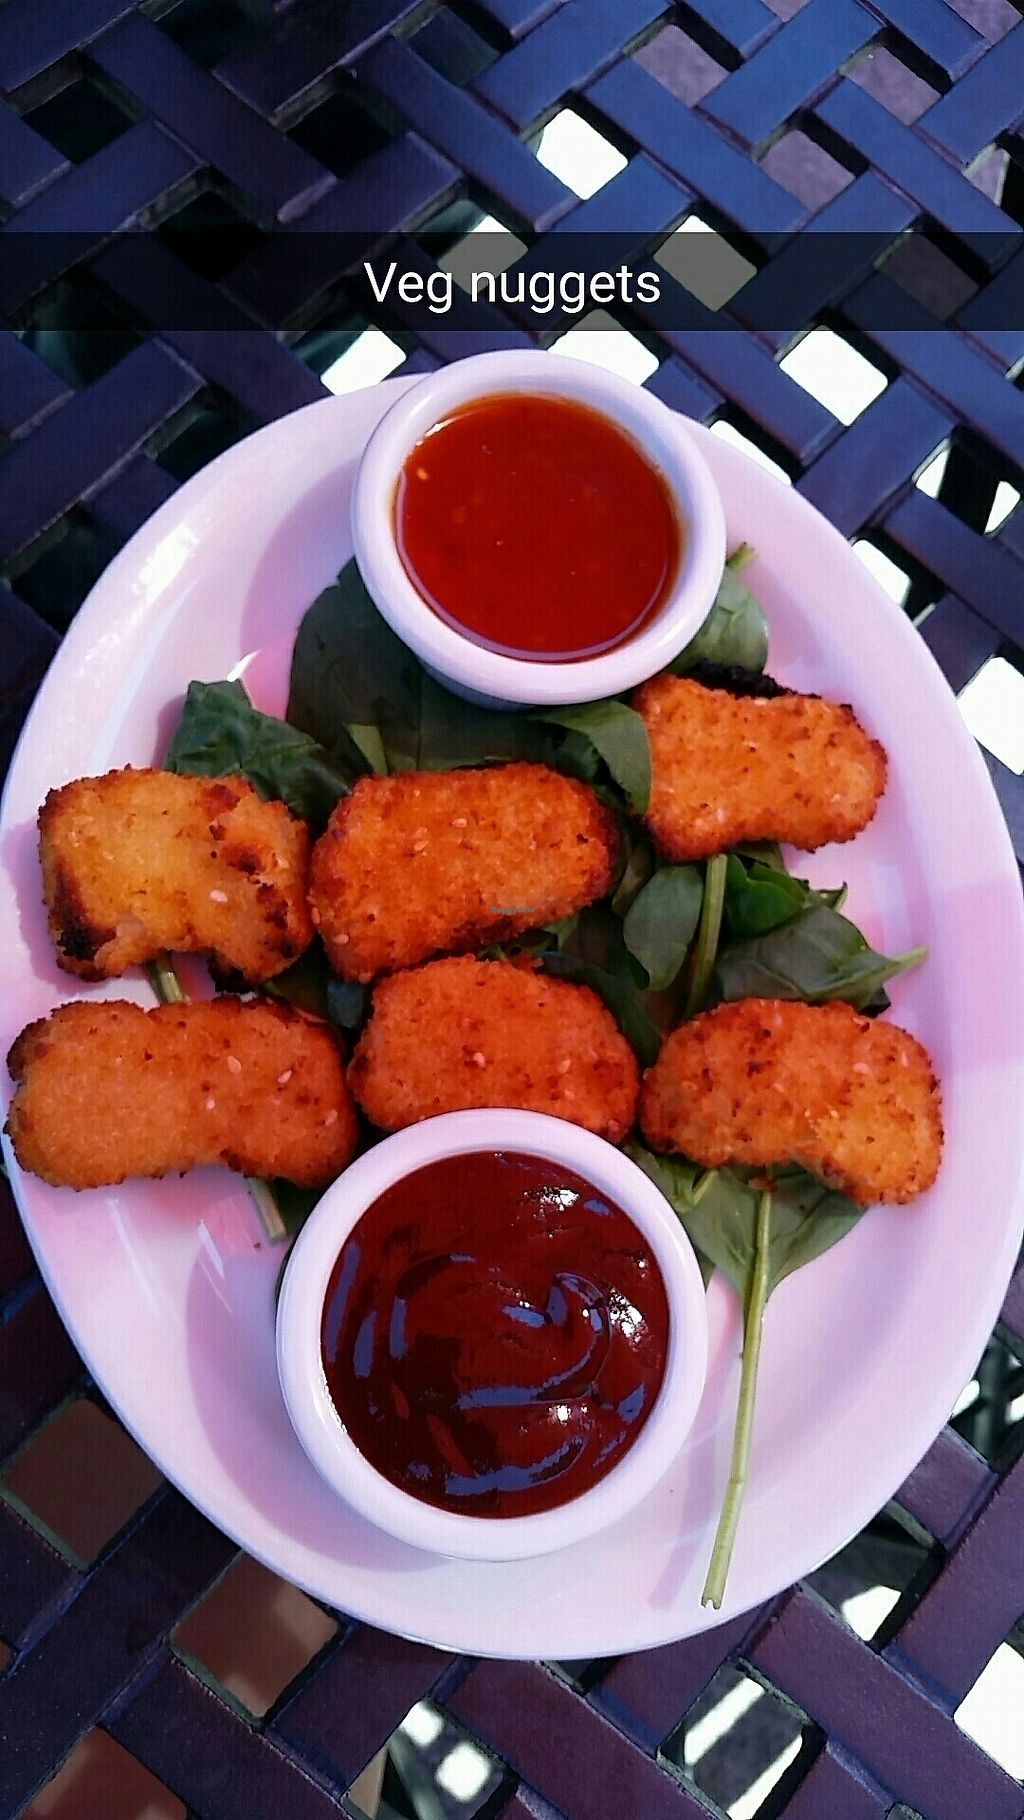 """Photo of Pizzetta  by <a href=""""/members/profile/L1feRabbit"""">L1feRabbit</a> <br/>""""Chicken Nuggets"""" with sweet chili sauce and BBQ. So fun to have options that resemble """"normal"""" food options.  <br/> July 11, 2017  - <a href='/contact/abuse/image/30047/278954'>Report</a>"""